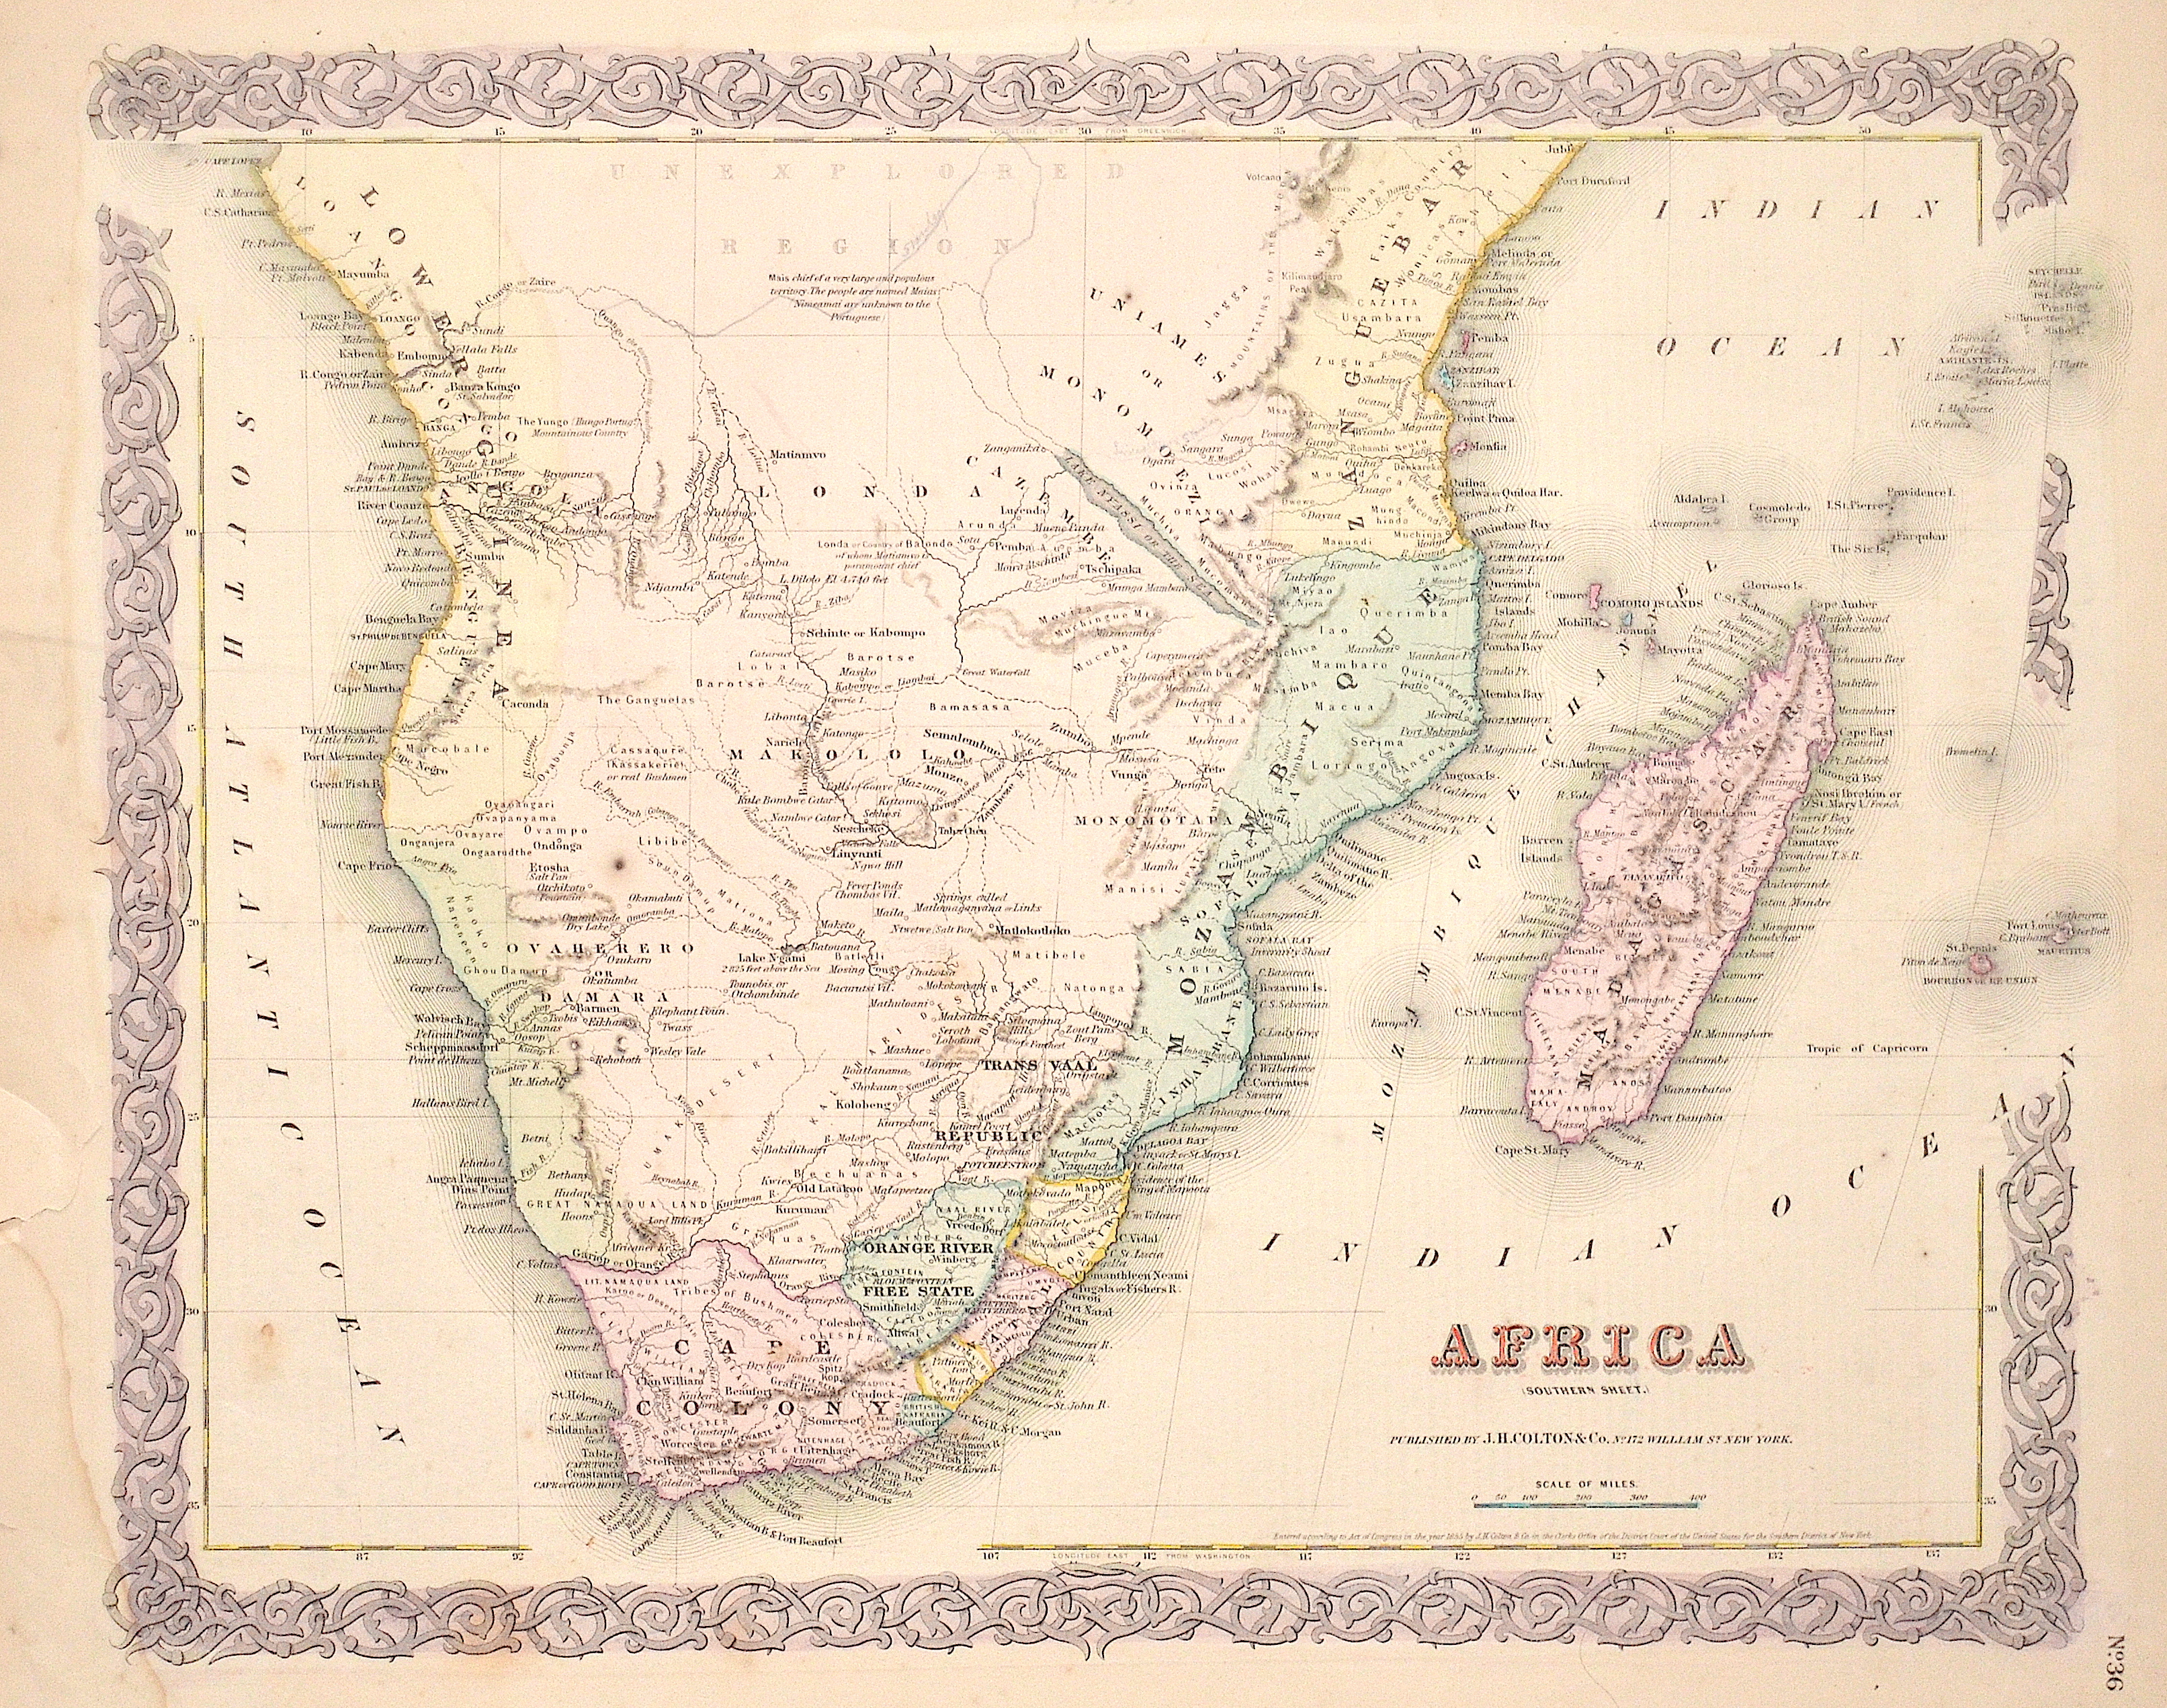 Colton/Hutchins  Africa (Sothern Sheet.)